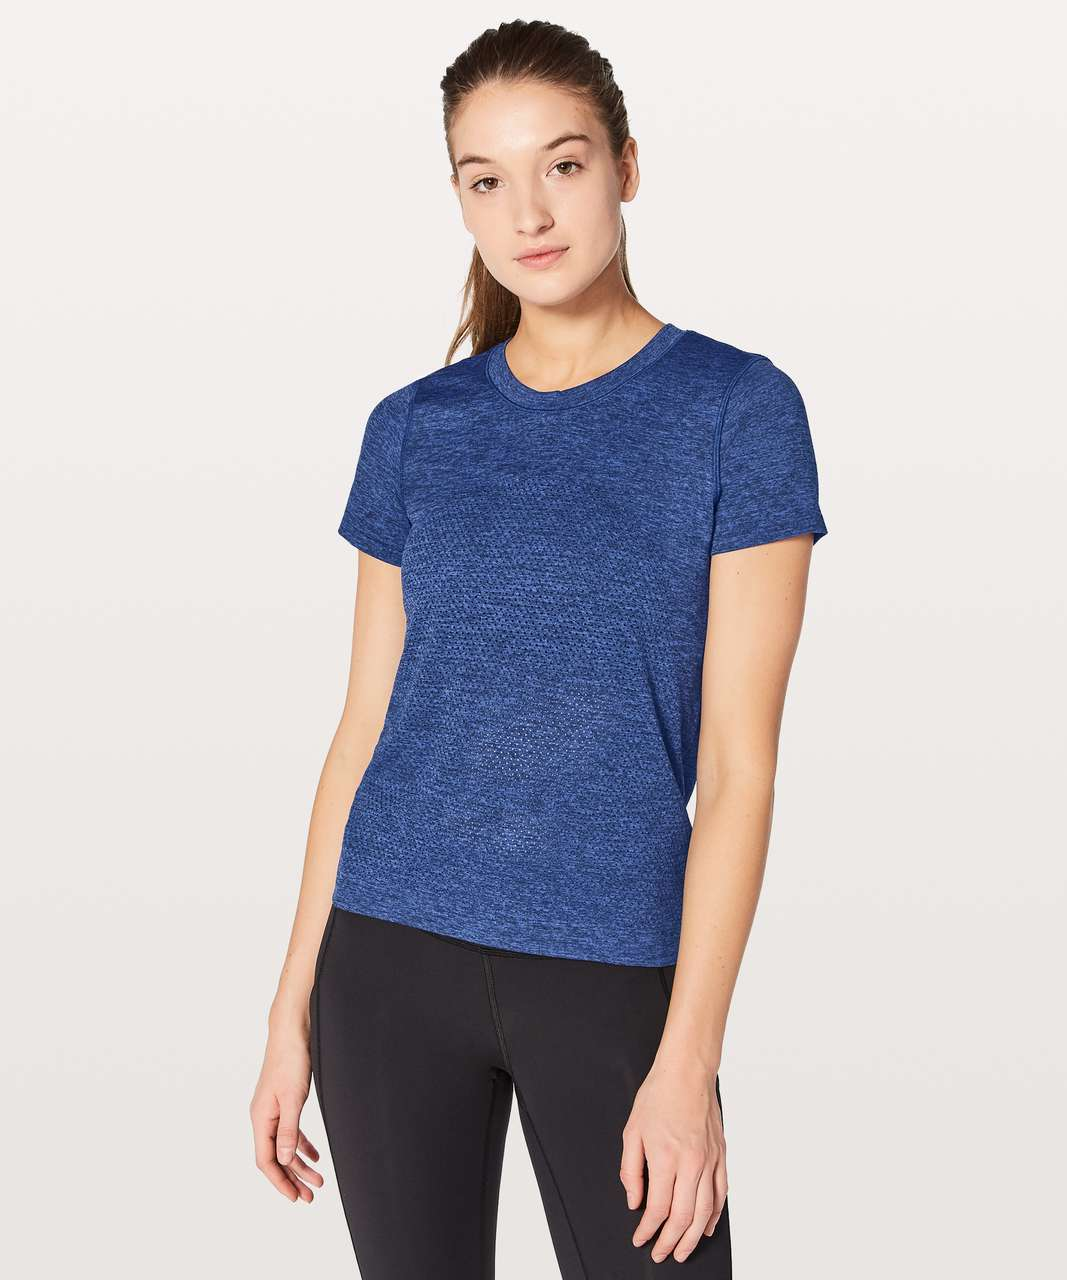 Lululemon Breeze By Short Sleeve - Blazer Blue / Black